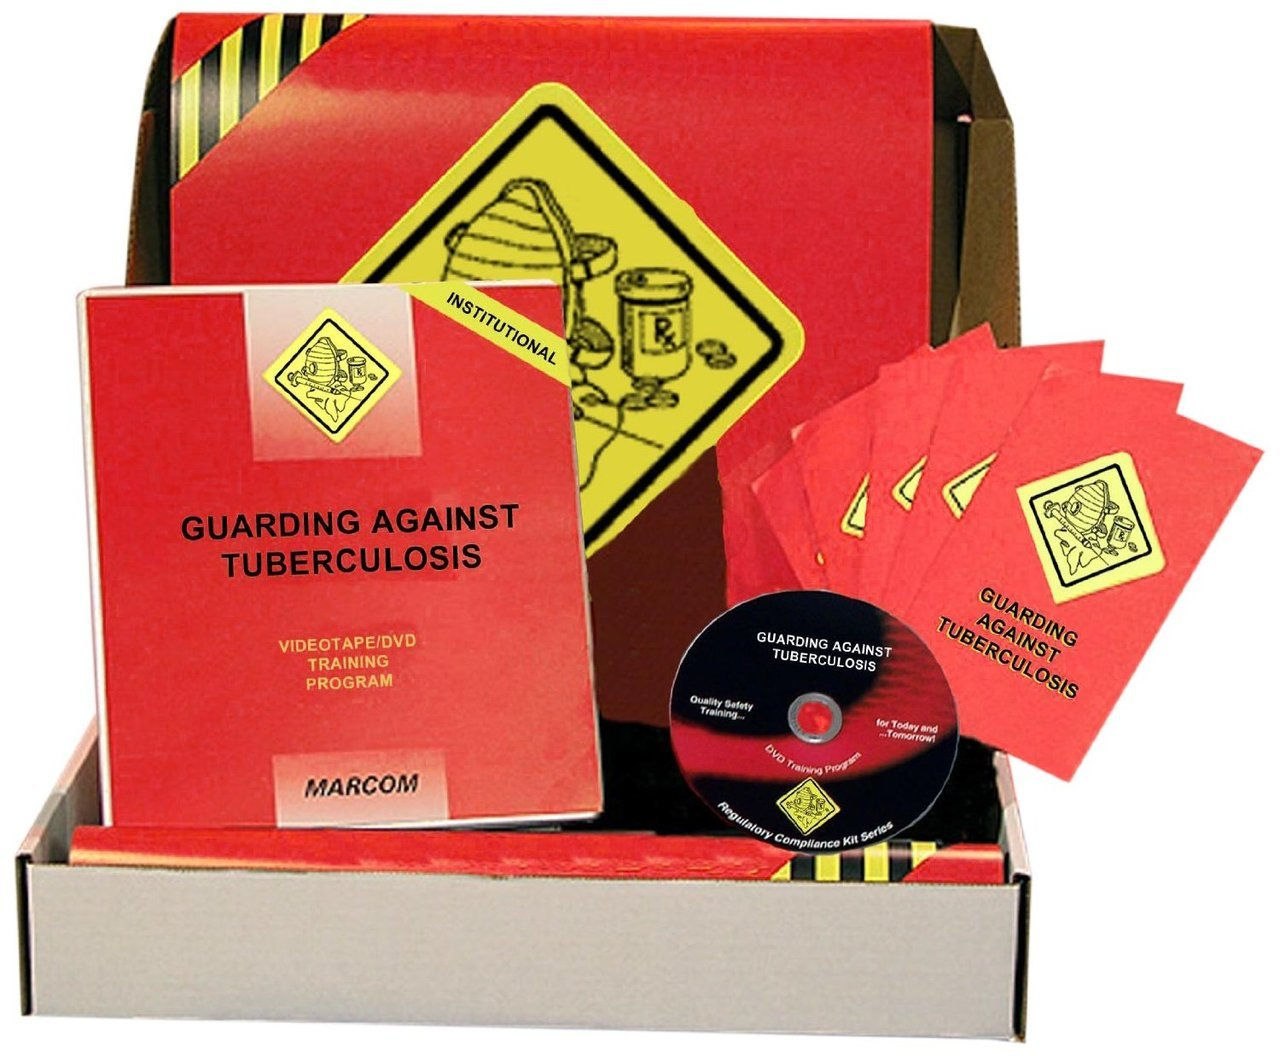 MARCOM Guarding Against Tuberculosis in Institutional Environments DVD Training Kit